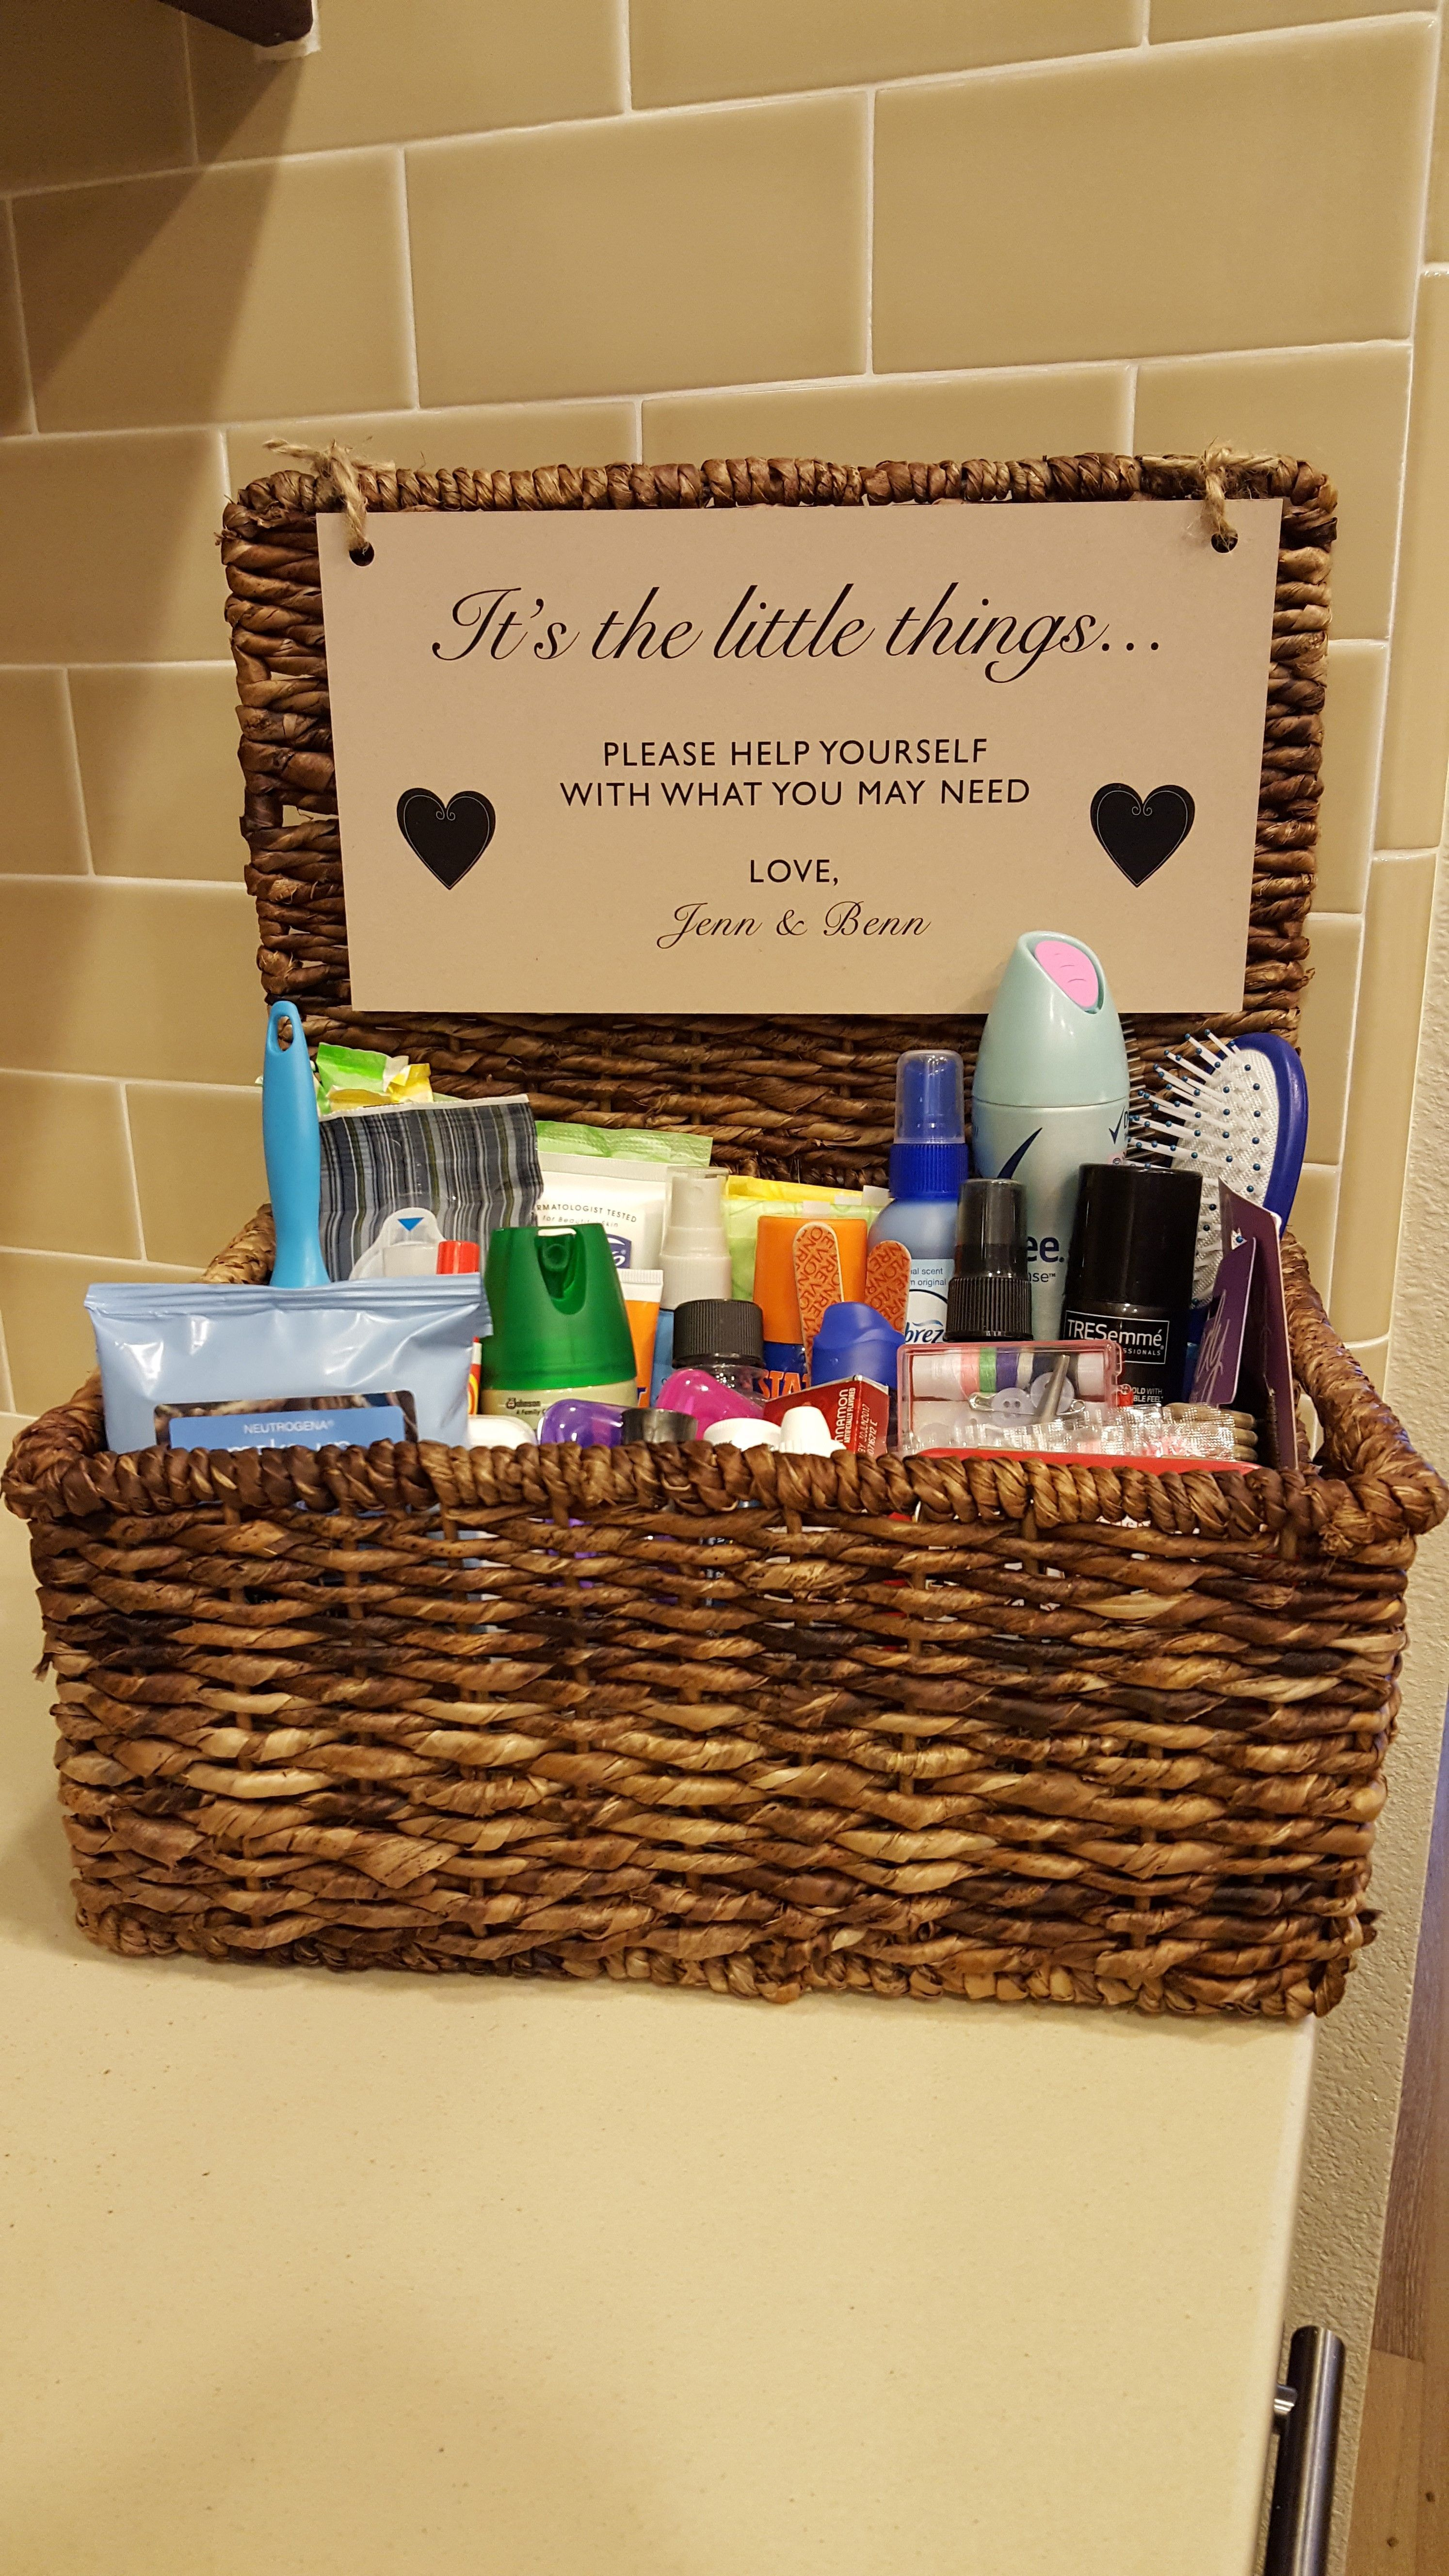 29 Small Guest Bathroom Ideas To Wow Your Visitors Bathroom Basket Wedding Wedding Bathroom Unusual Wedding Favours